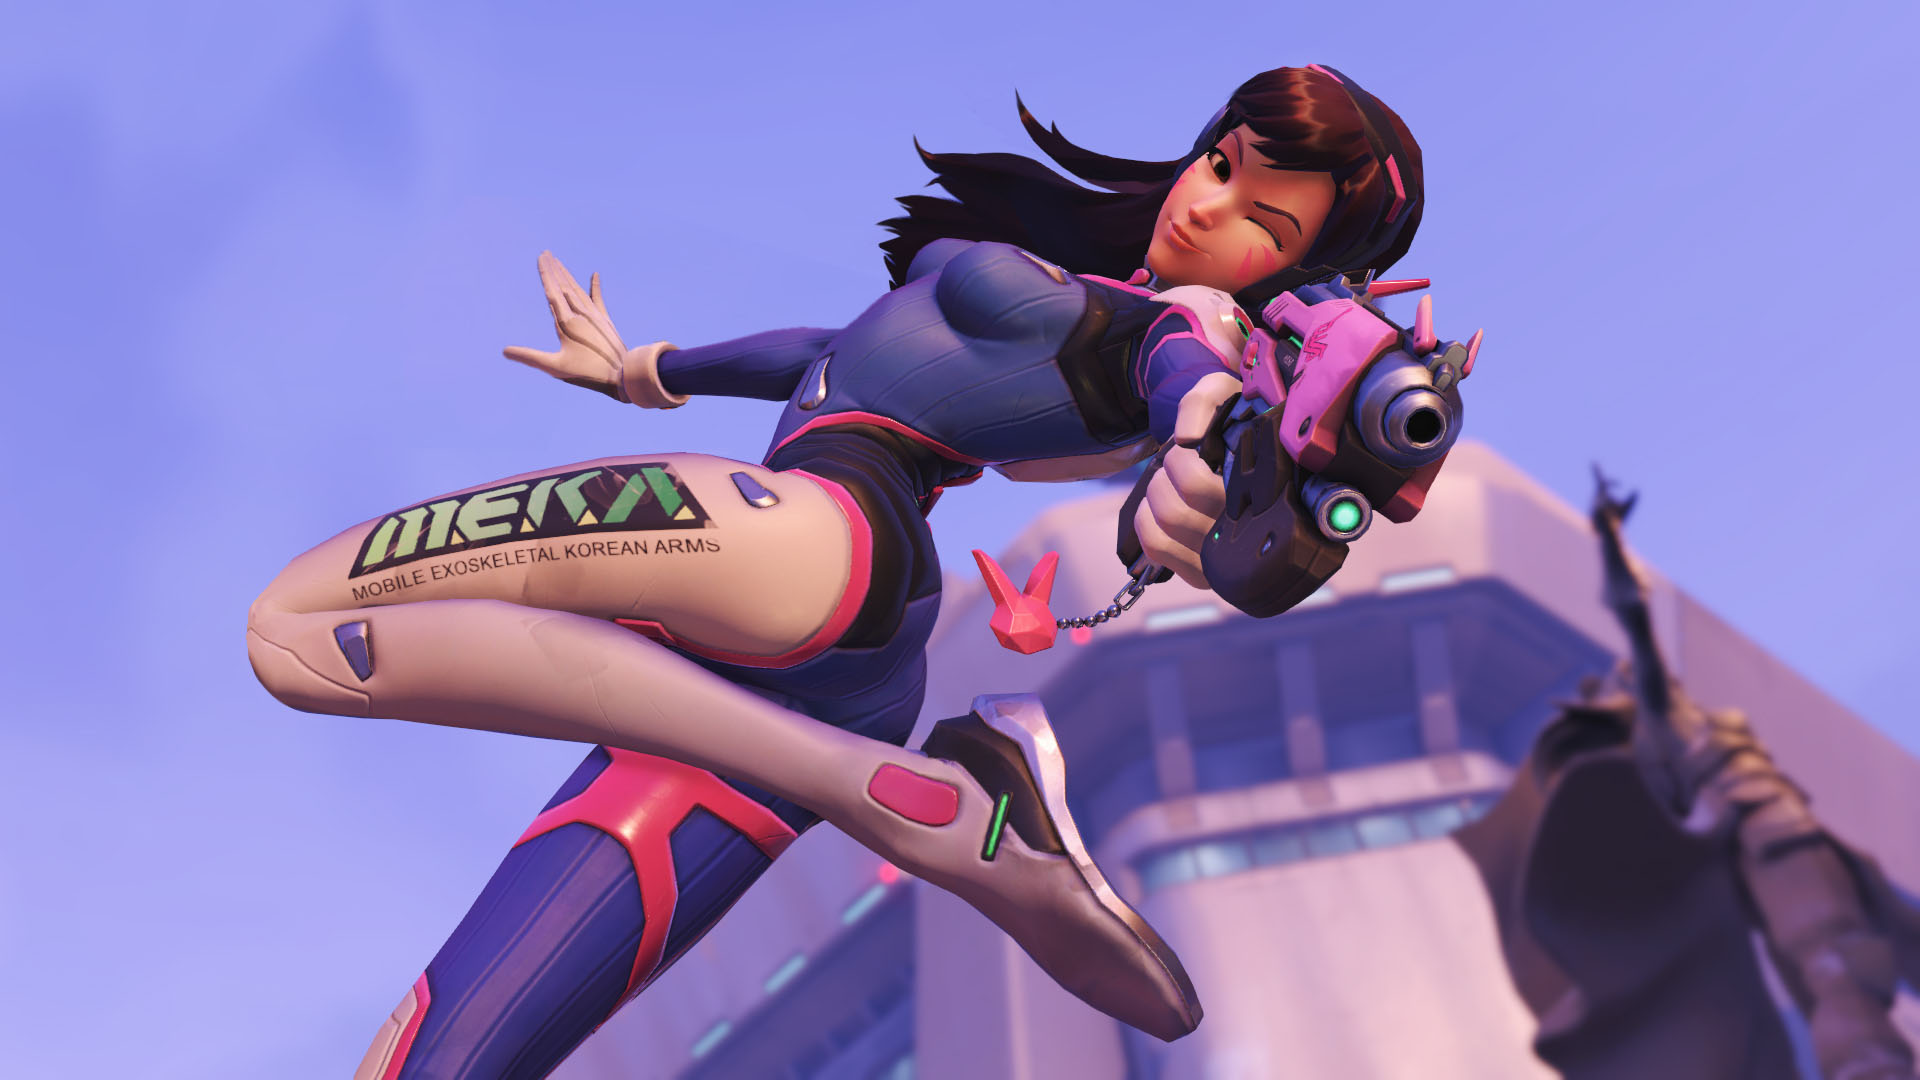 Blizzard is still working on a triple-A PC multiplayer game that's not Overwatch 2